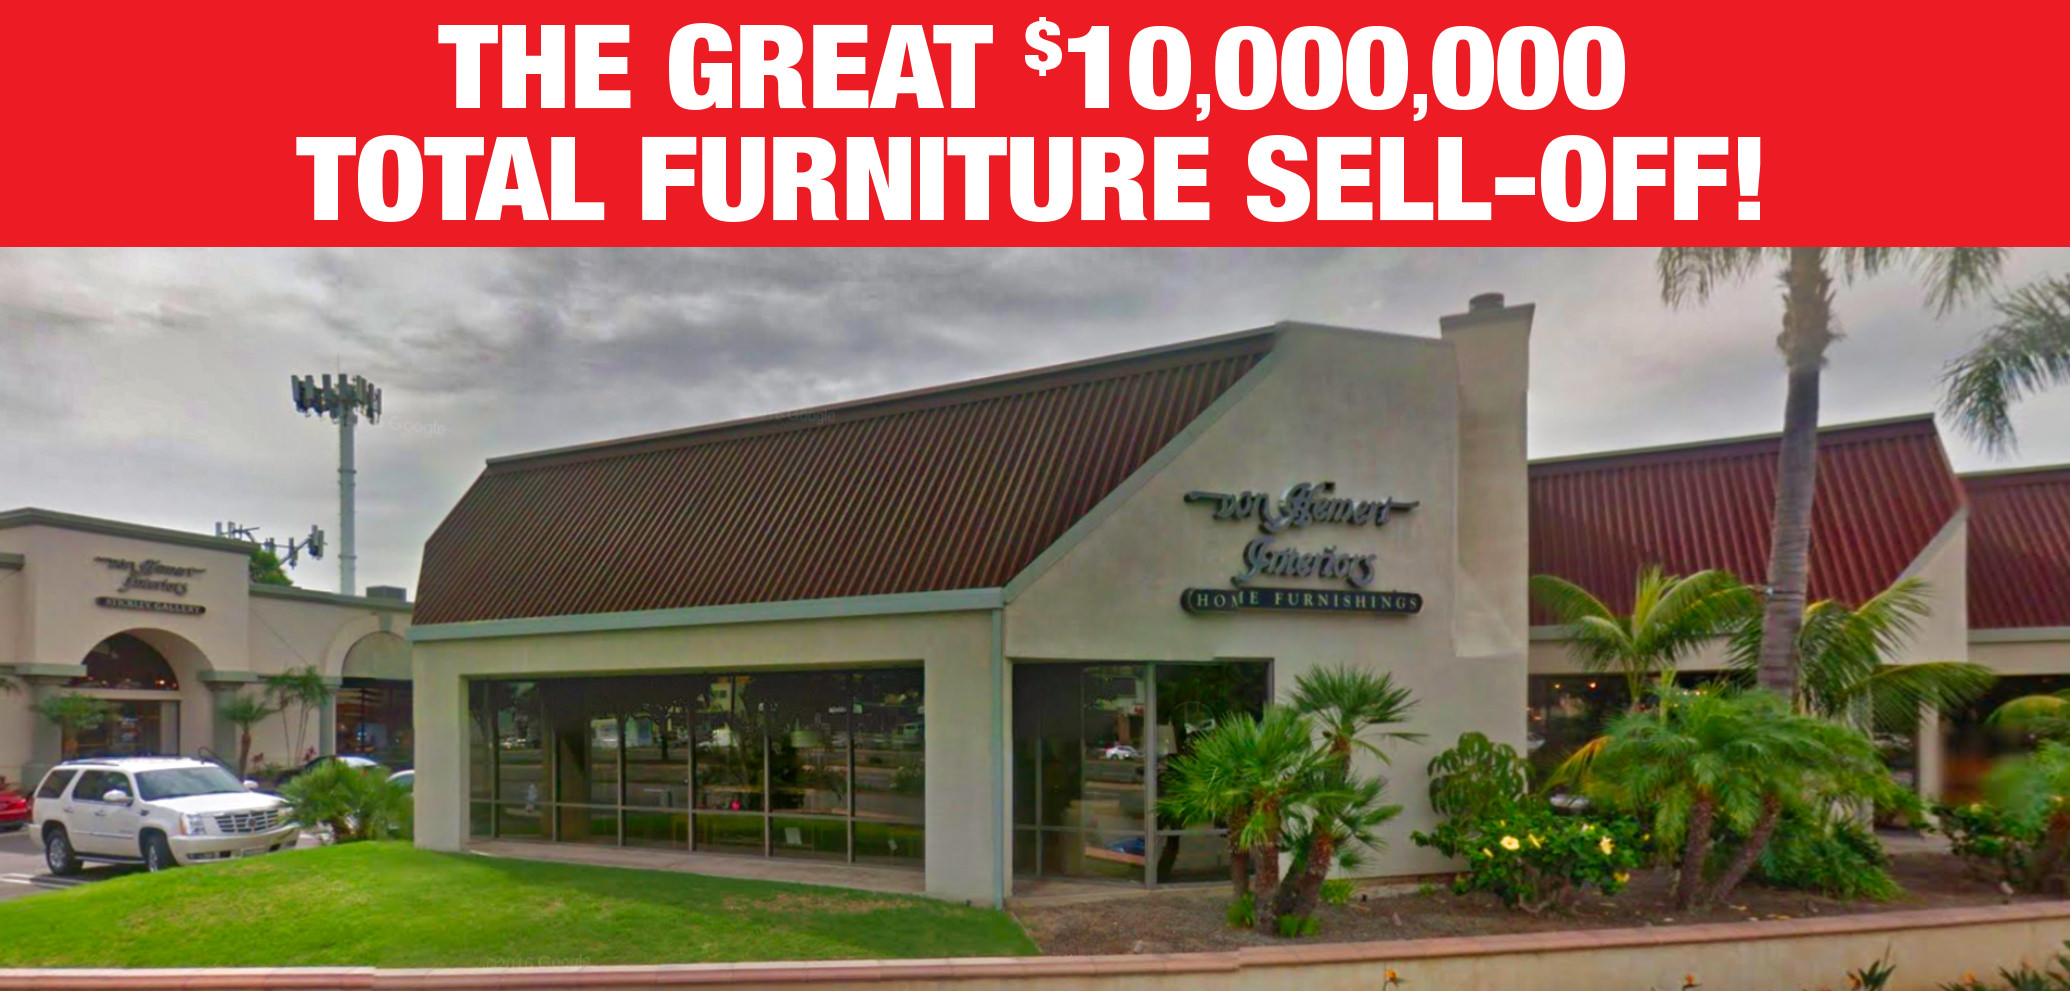 Von Hemert Interiors Great $10,000,000 Total Furniture Sell Off!